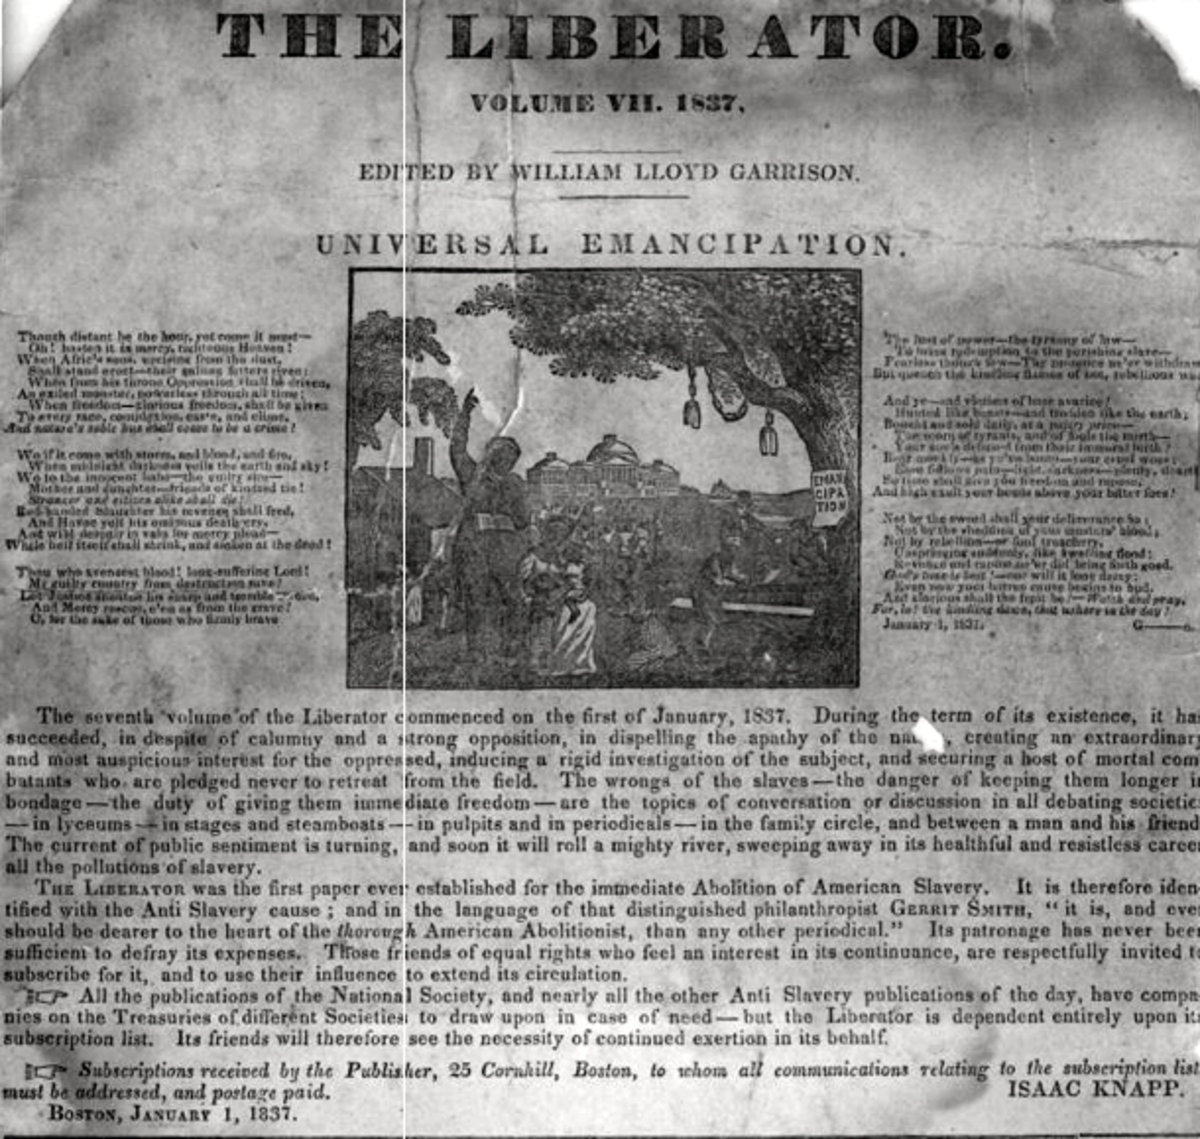 The Liberator Newspaper by William Lloyd Garrison